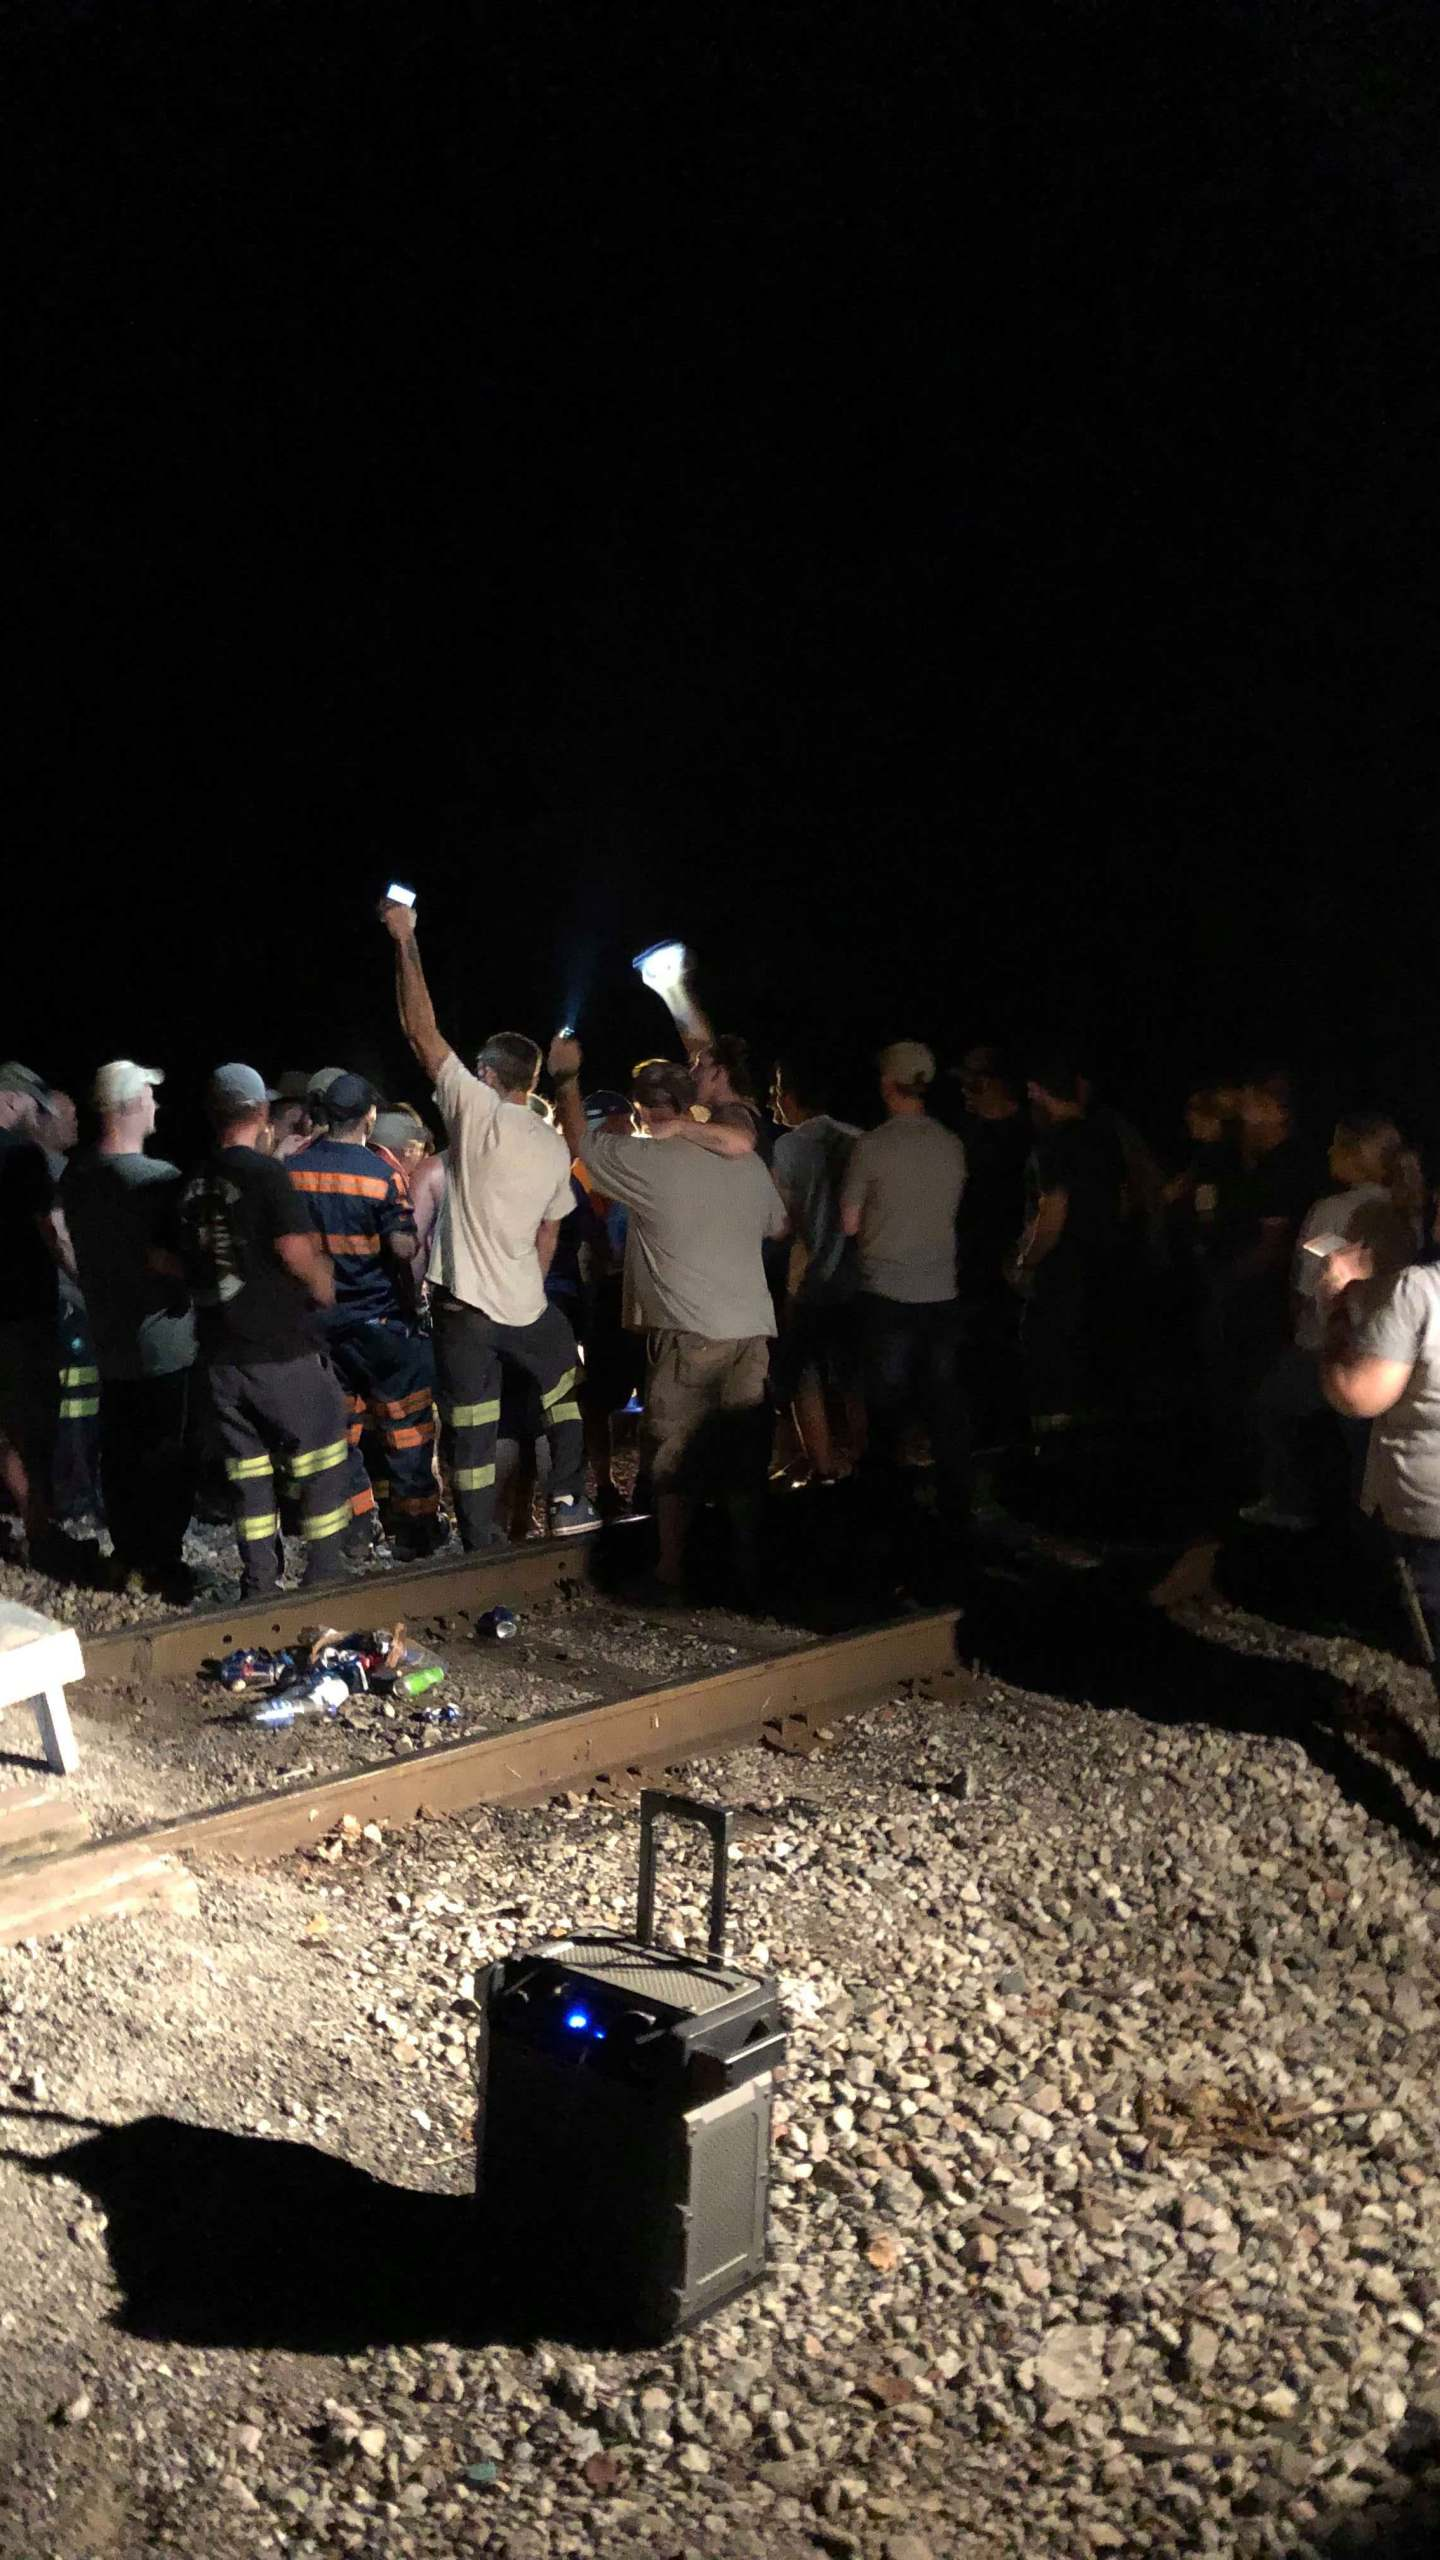 Miners block train tracks to protest bankrupt coal company